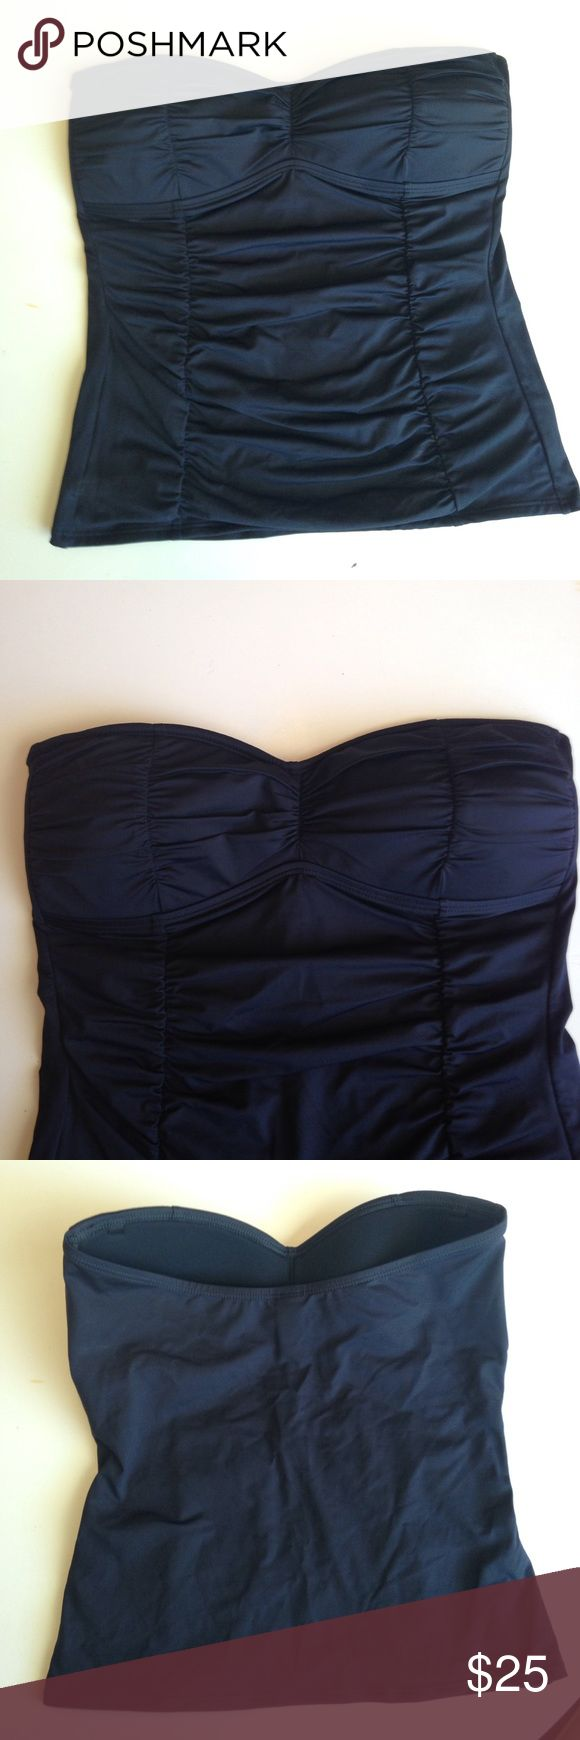 """Tommy Bahama tankini top Tommy Bahama Pearls shirred tankini top. Strapless bandeau style. Fully lined, bra-like bust. 15"""" body length, 14"""" across when lying flat. Ruching all over front for flattering coverage.  Tried on, but never used. Tommy Bahama Swim"""